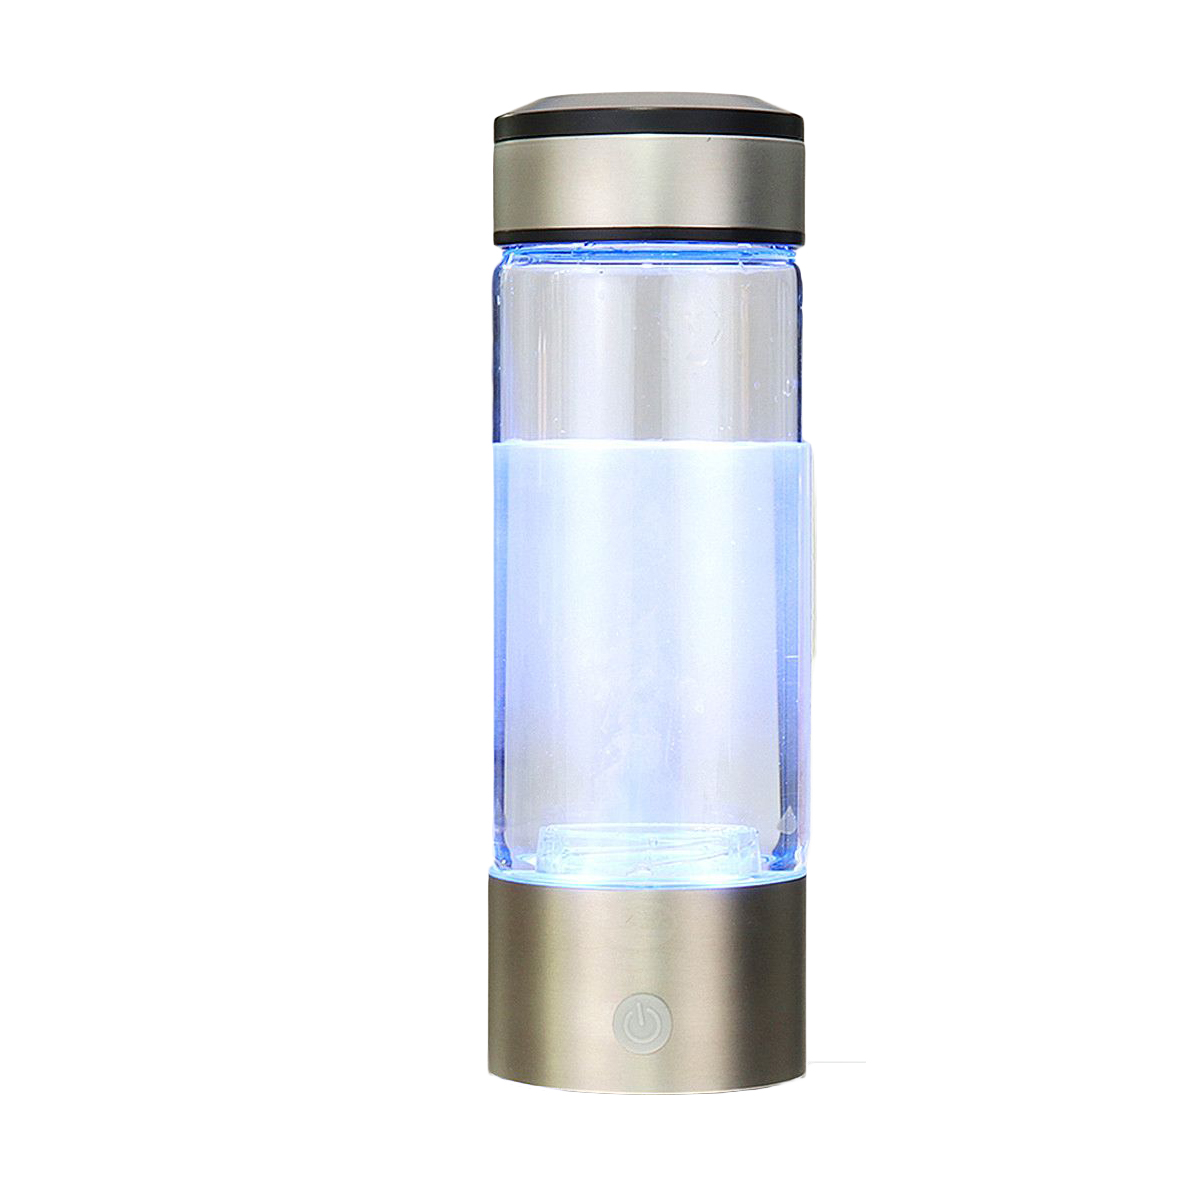 Portable Hydrogen-Rich Water Bottle Alkaline lonizer Hydrogen-Water Generator Maker Rechargeable Water Bottle 380ML Anti-Aging image